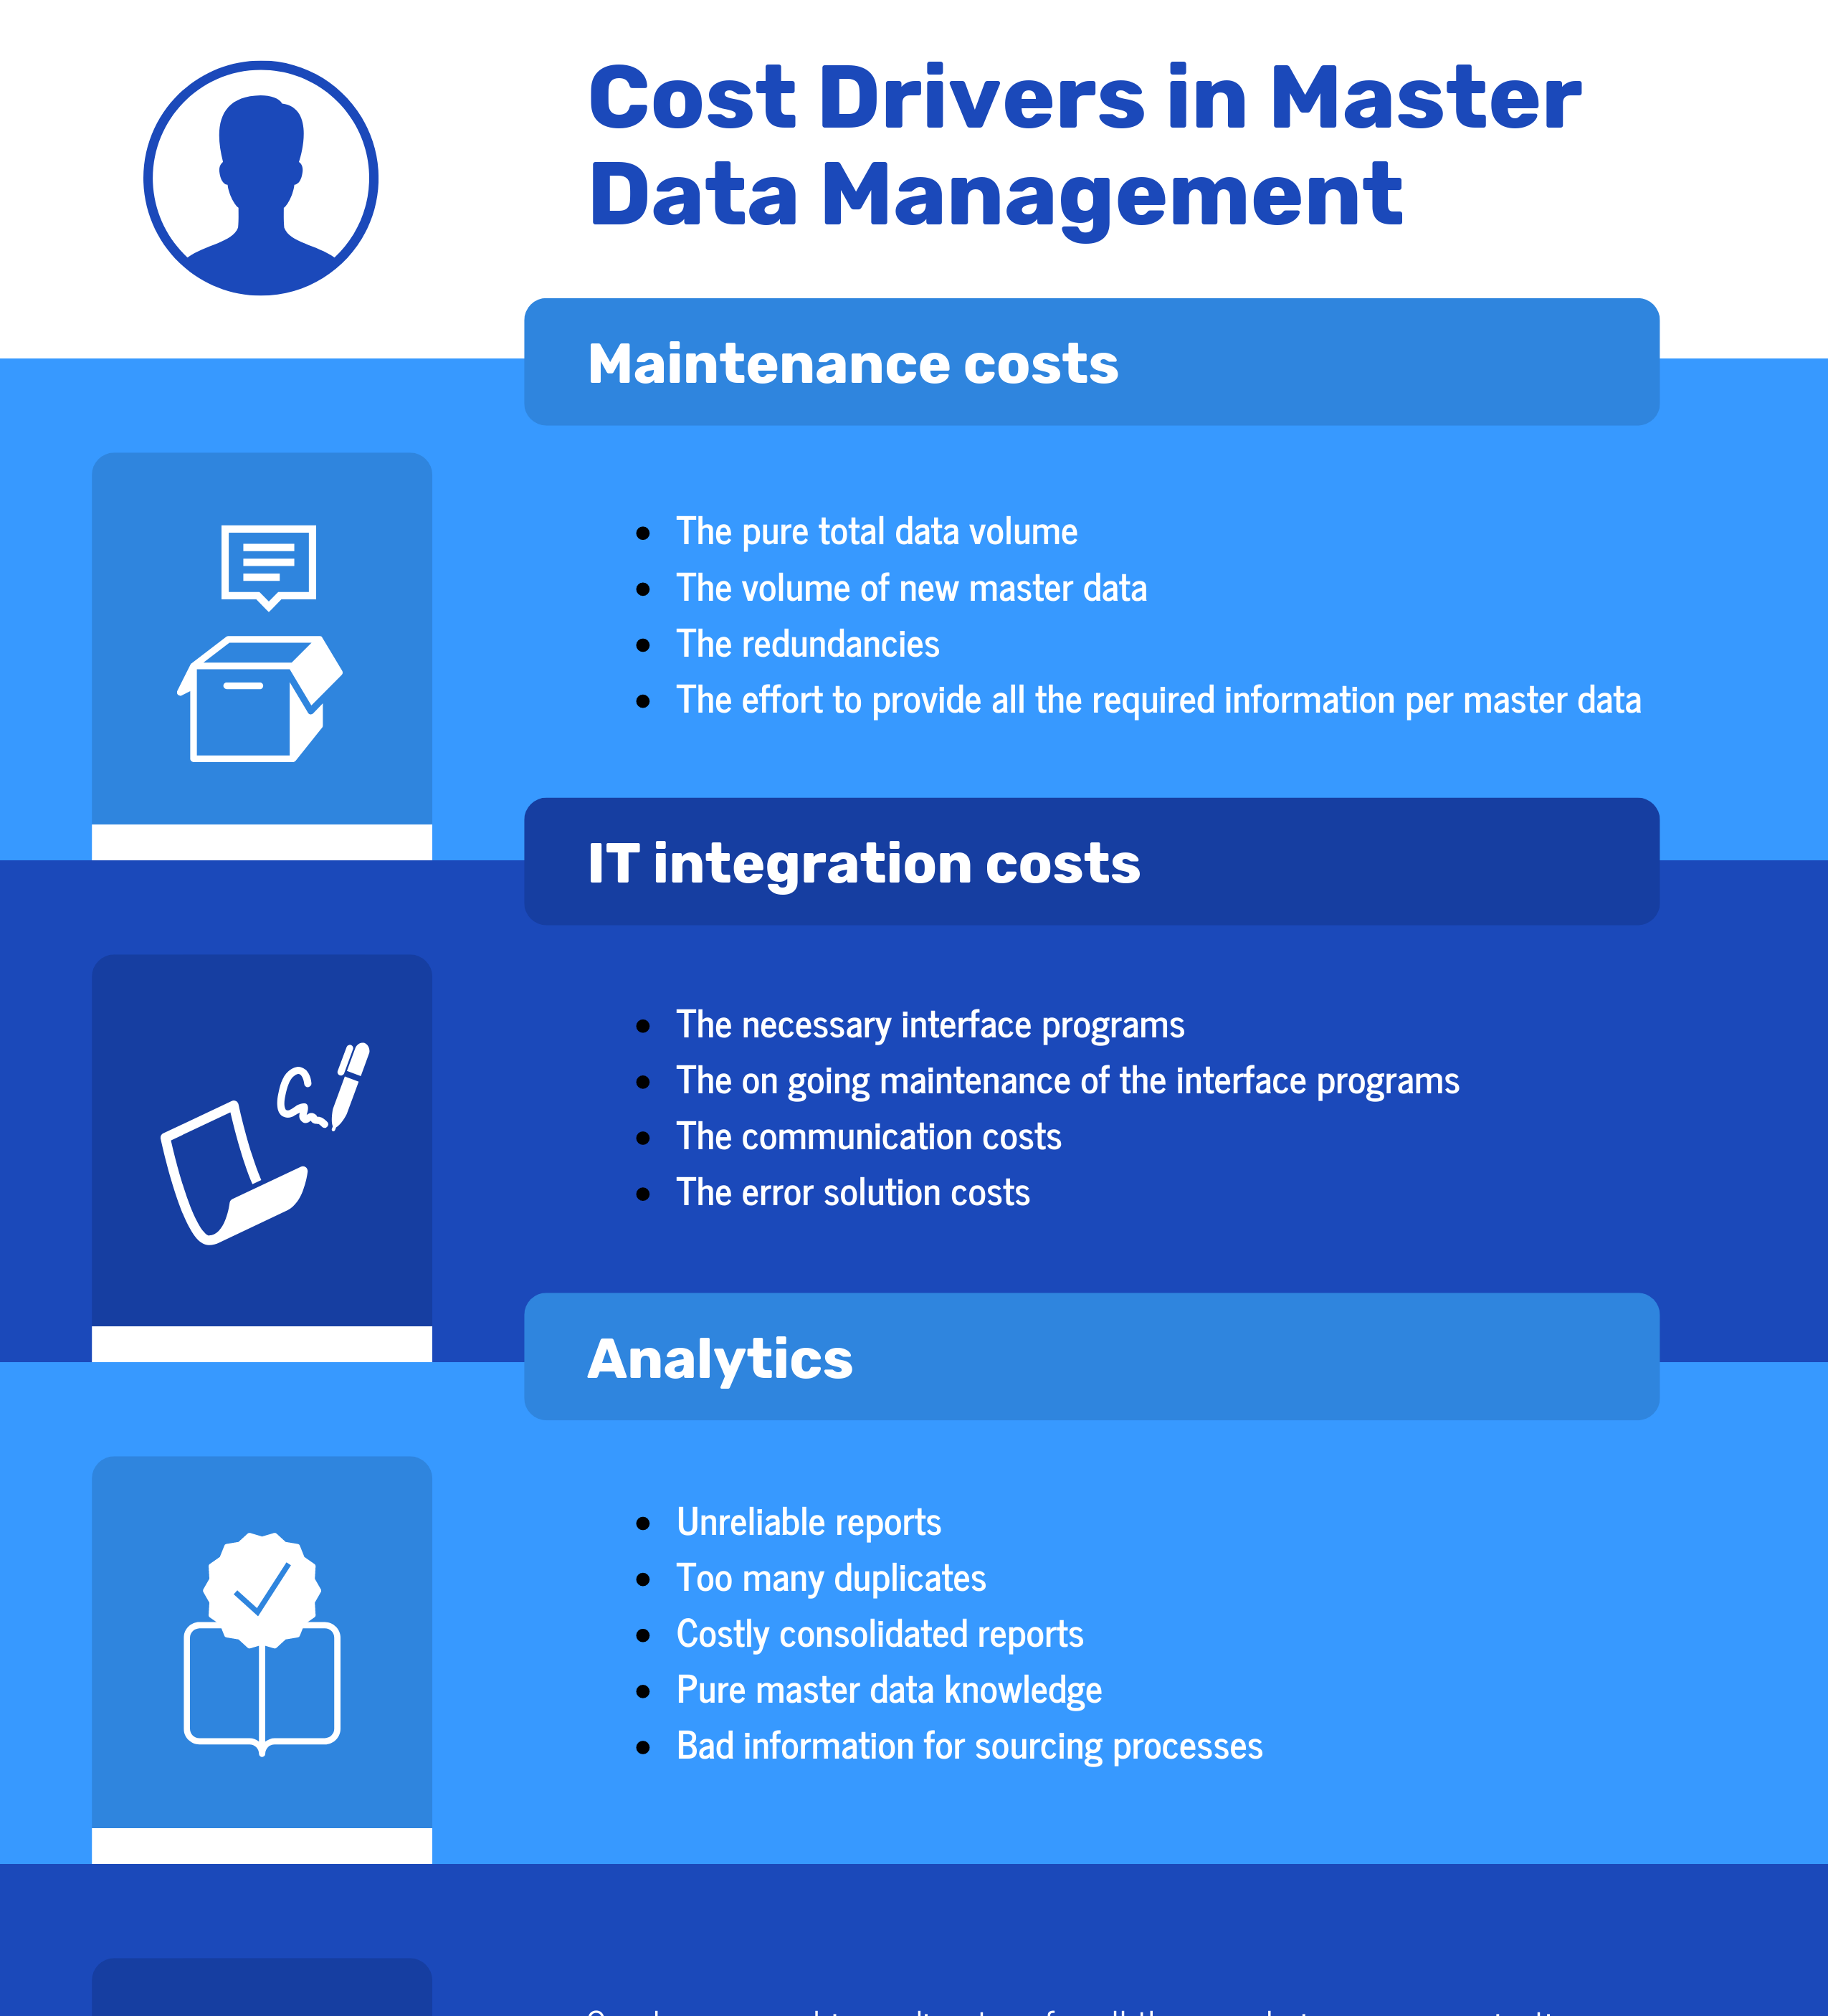 What are the Cost Drivers in Master Data Management